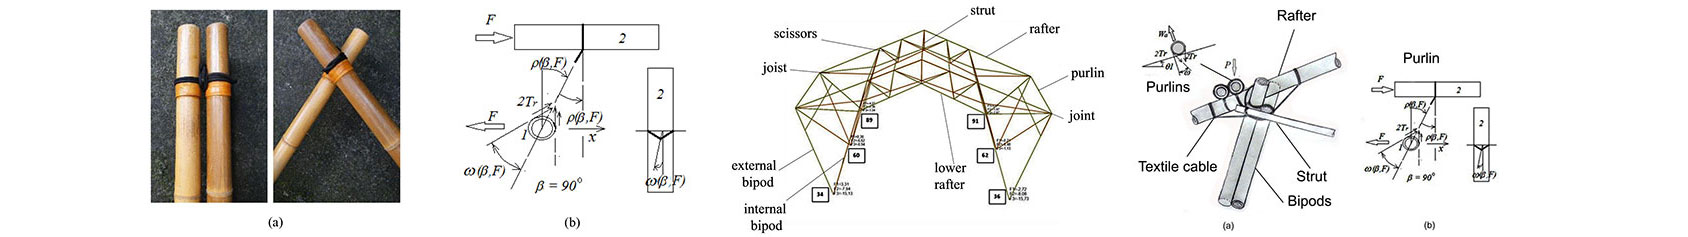 Analysis-of-a-bamboo-structure-with-flexible-joints-International-Journal-of-Space-Structures.jpg